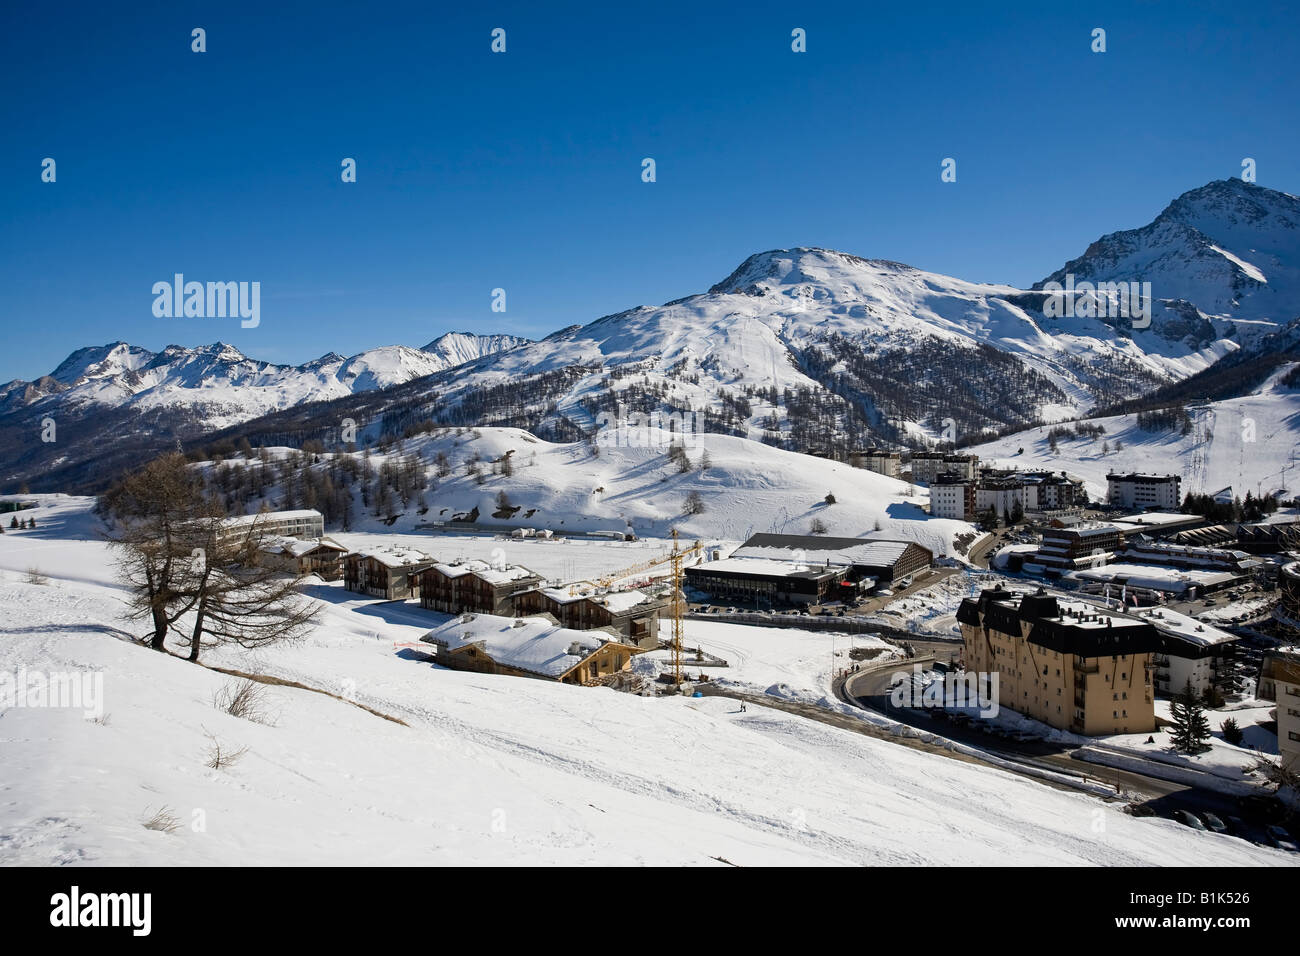 Sestriere Ski Resort Site of 2006 Winter Olympics Turin Province Piedmont Italy Stock Photo